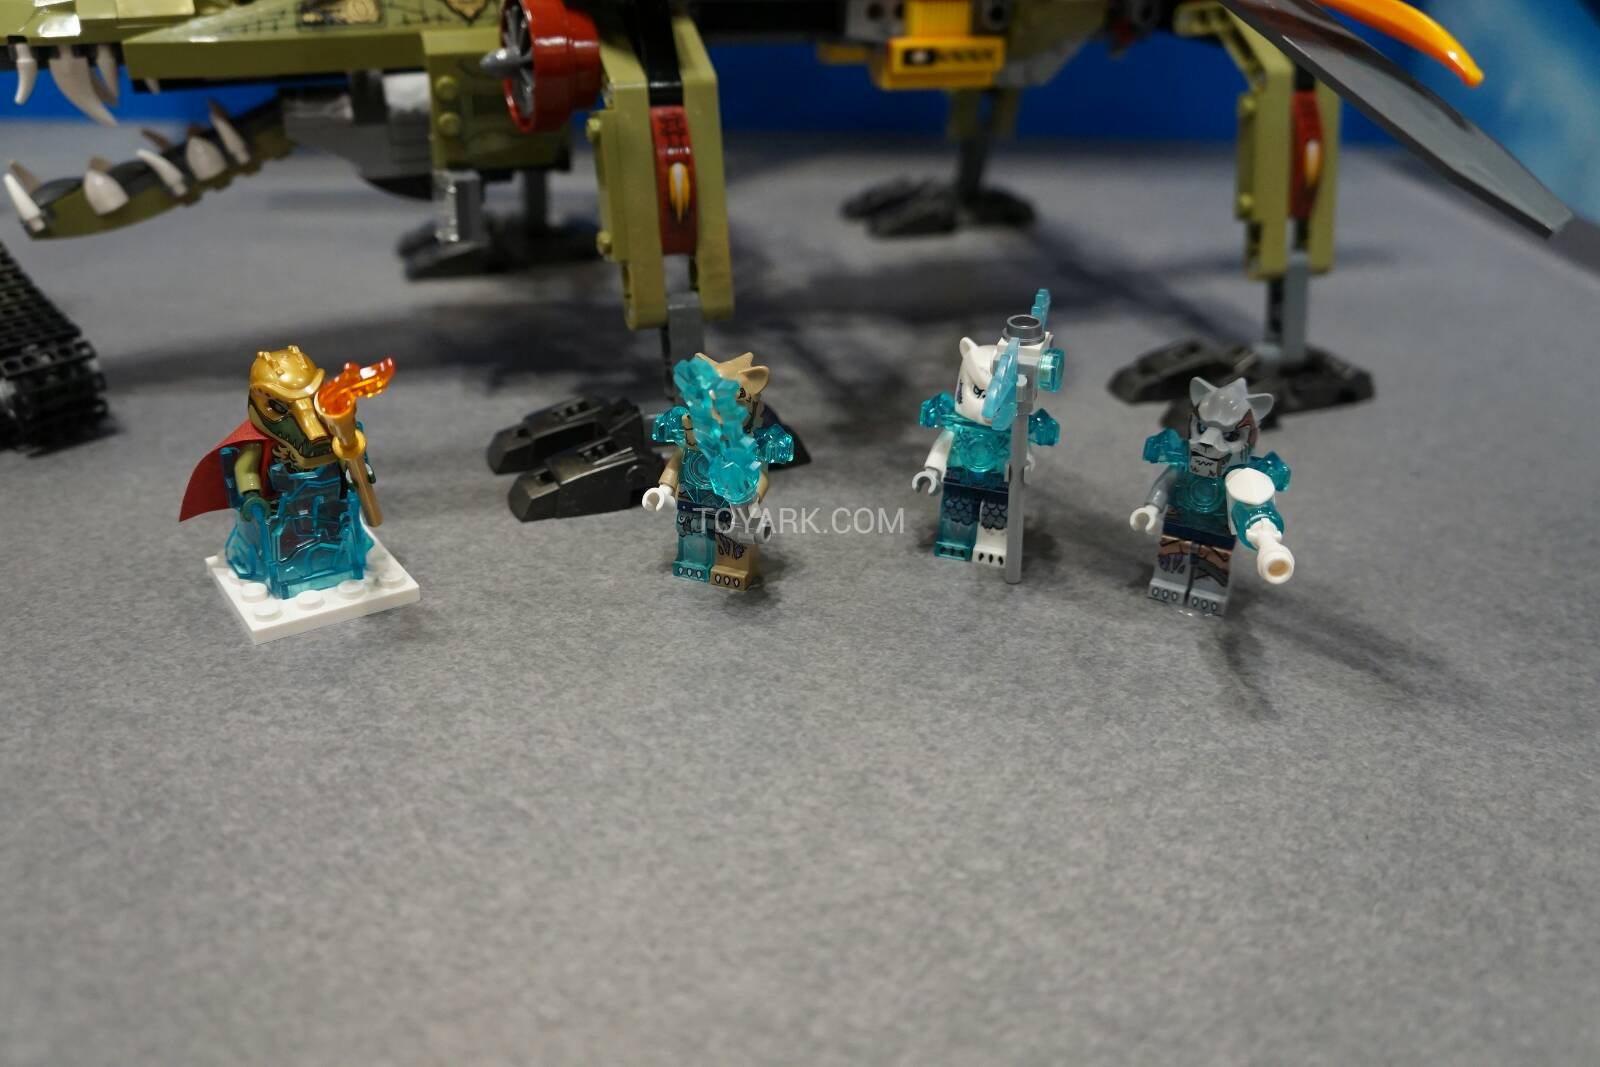 Toy-Fair-2015-LEGO-Chima-039.jpg